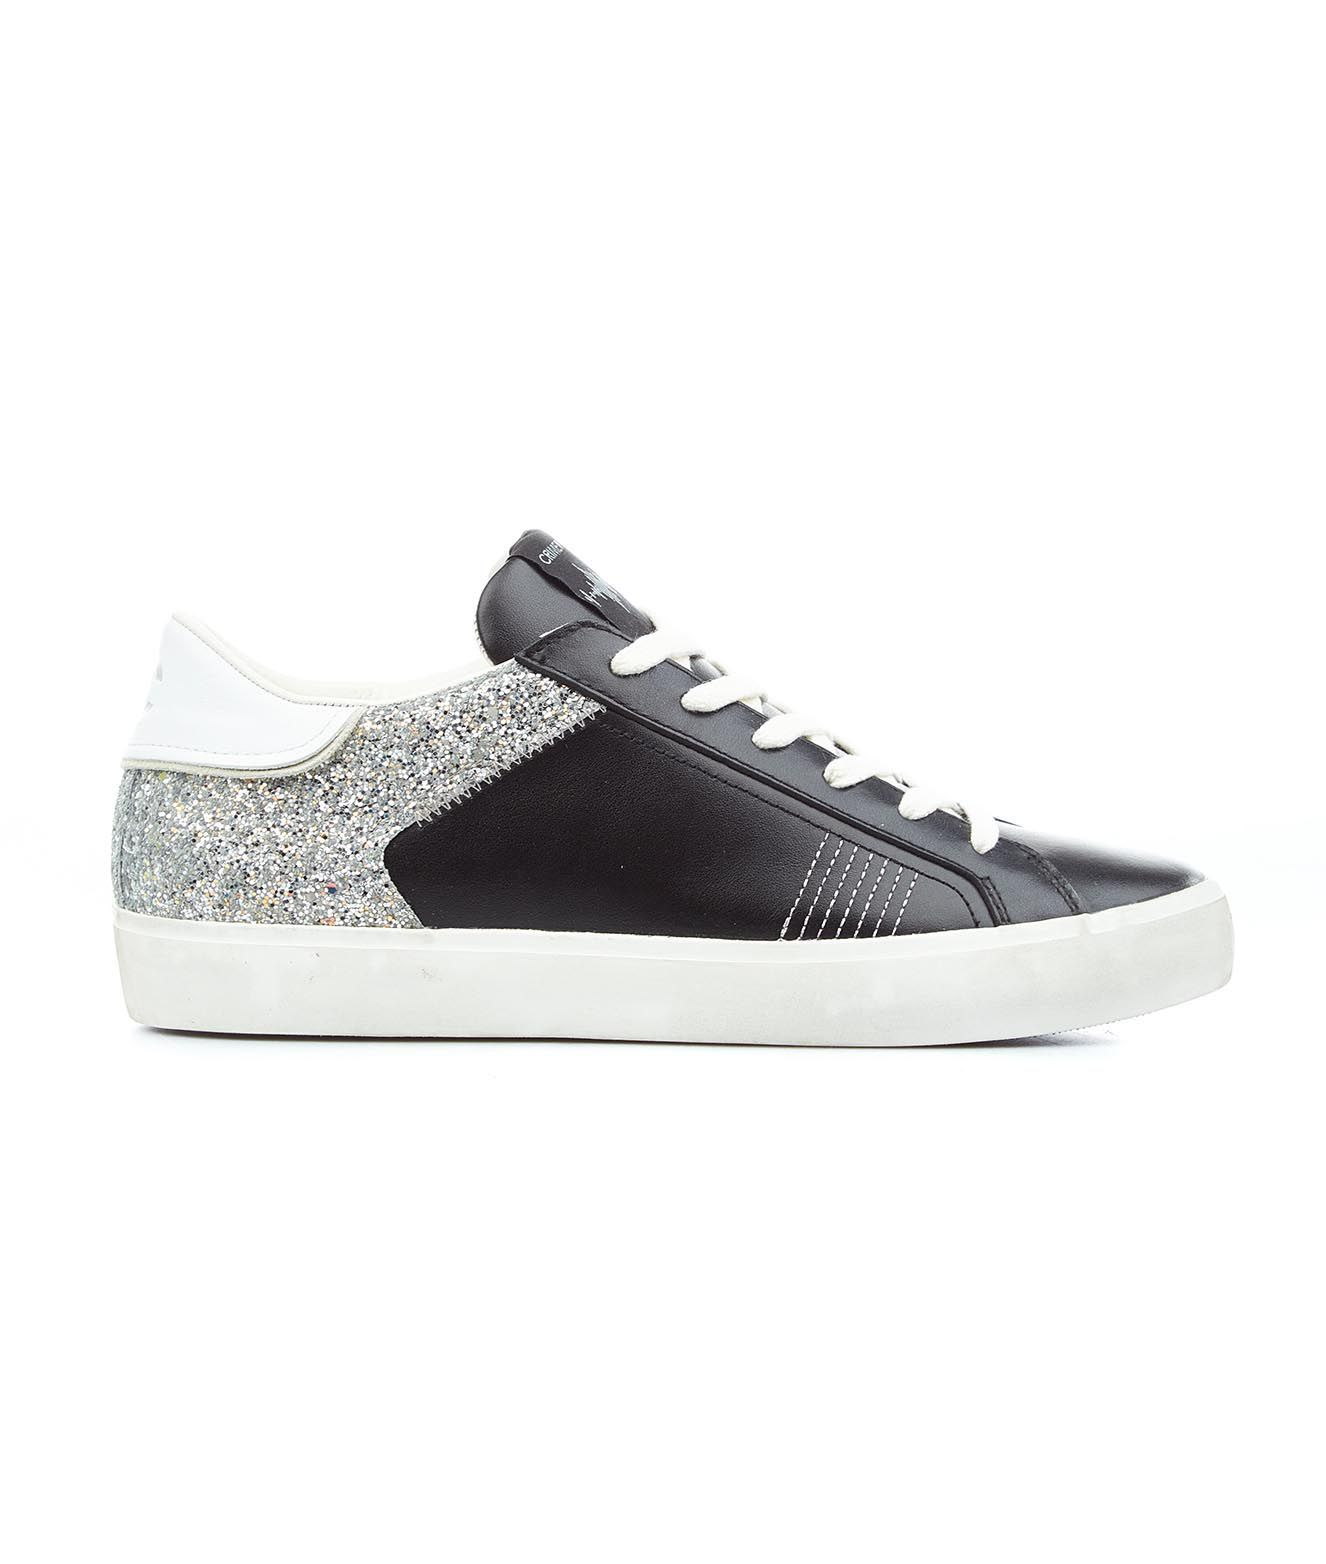 Crime London Low tops CRIME LONDON WOMEN'S 25501PP3B11 BLACK OTHER MATERIALS SNEAKERS